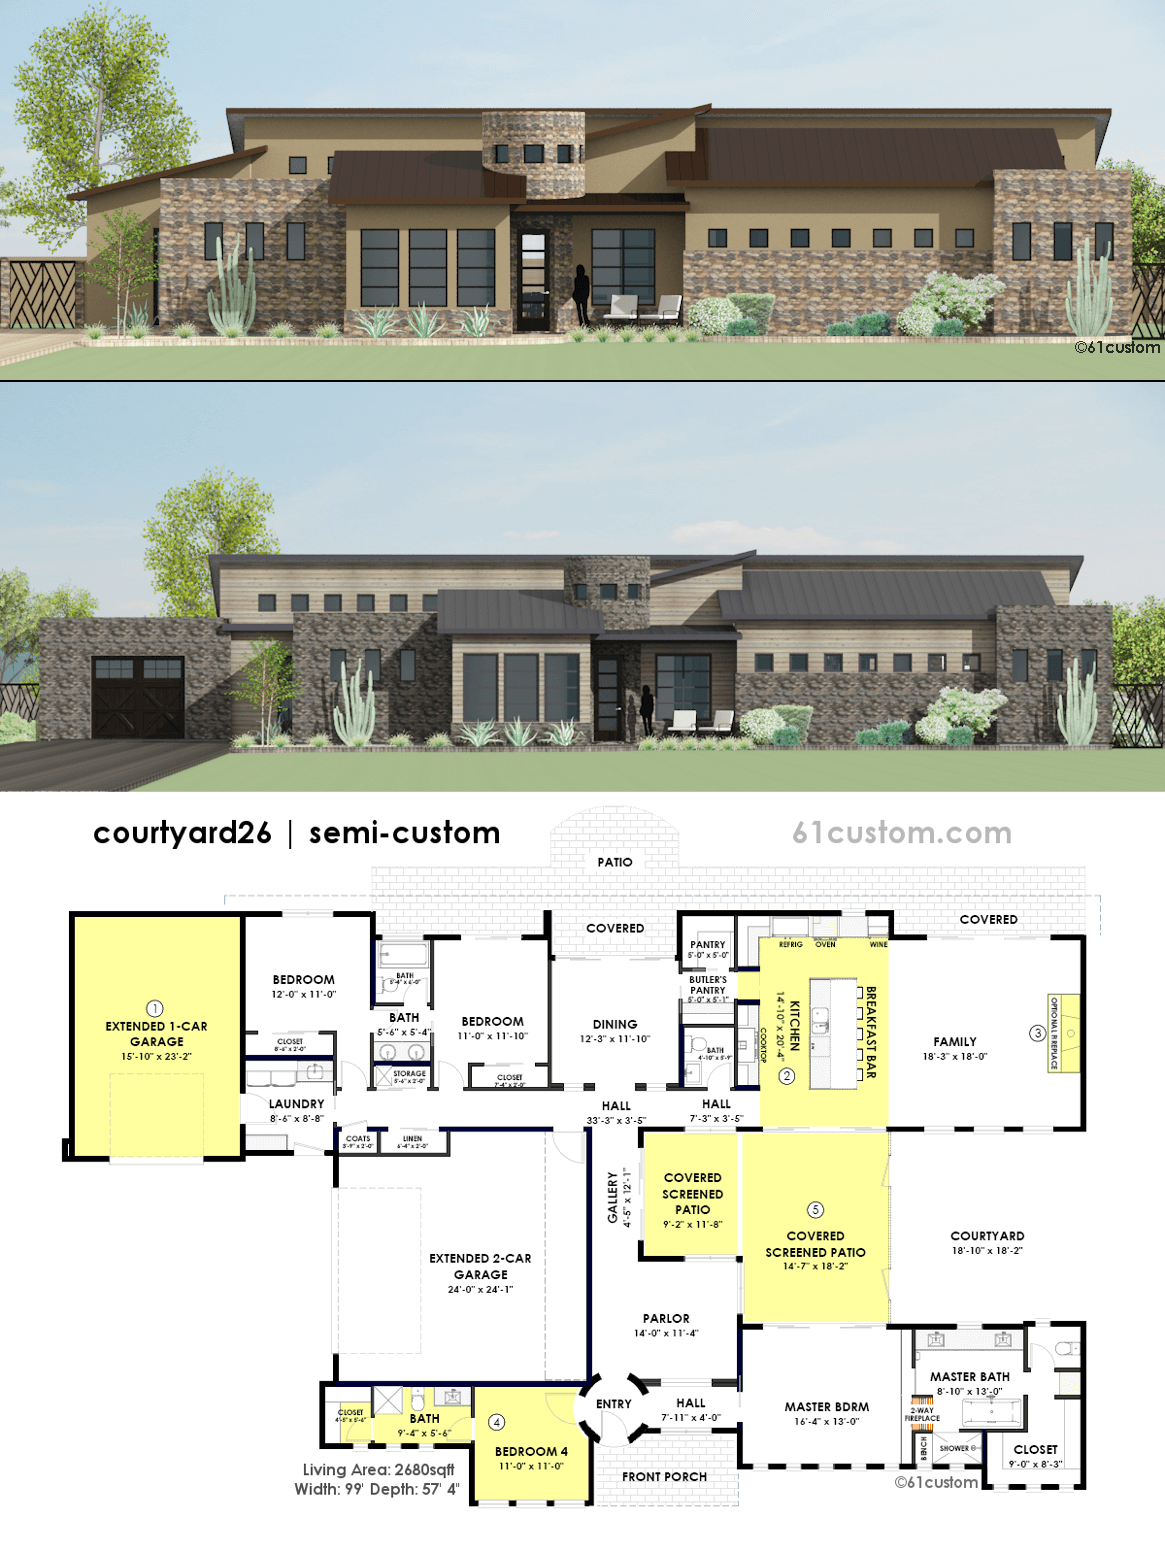 Contemporary side courtyard house plan 61custom for Modern house plan